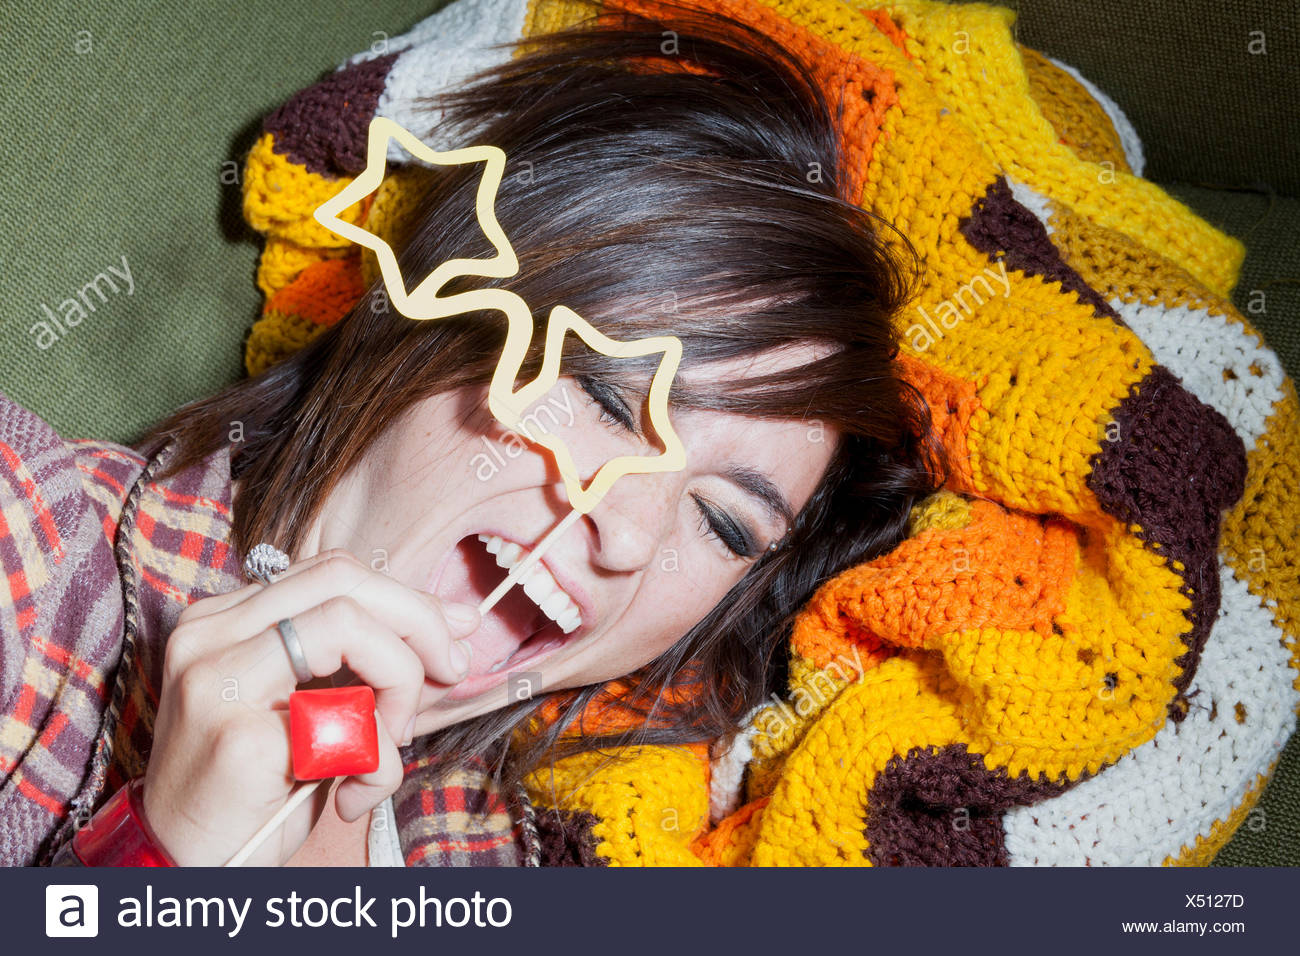 1970's style portrait of young woman holding star shaped spectacles - Stock Image